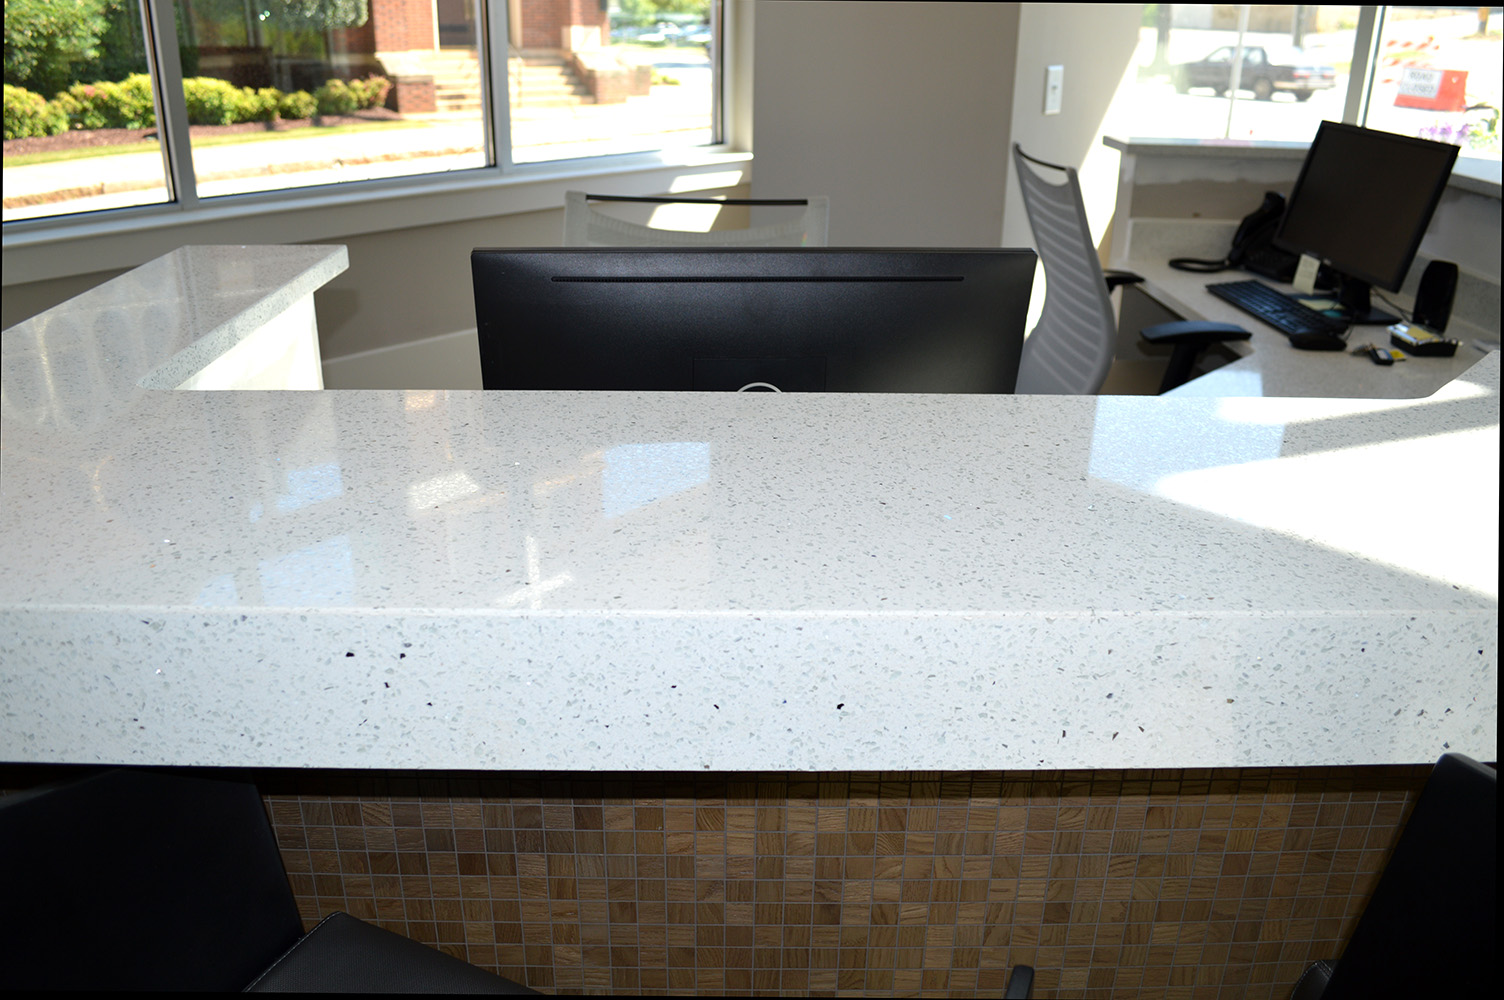 East Coast Granite installed this beautiful White quartz countertop on a receptionist's desk at Link apartments in Greenville, SC